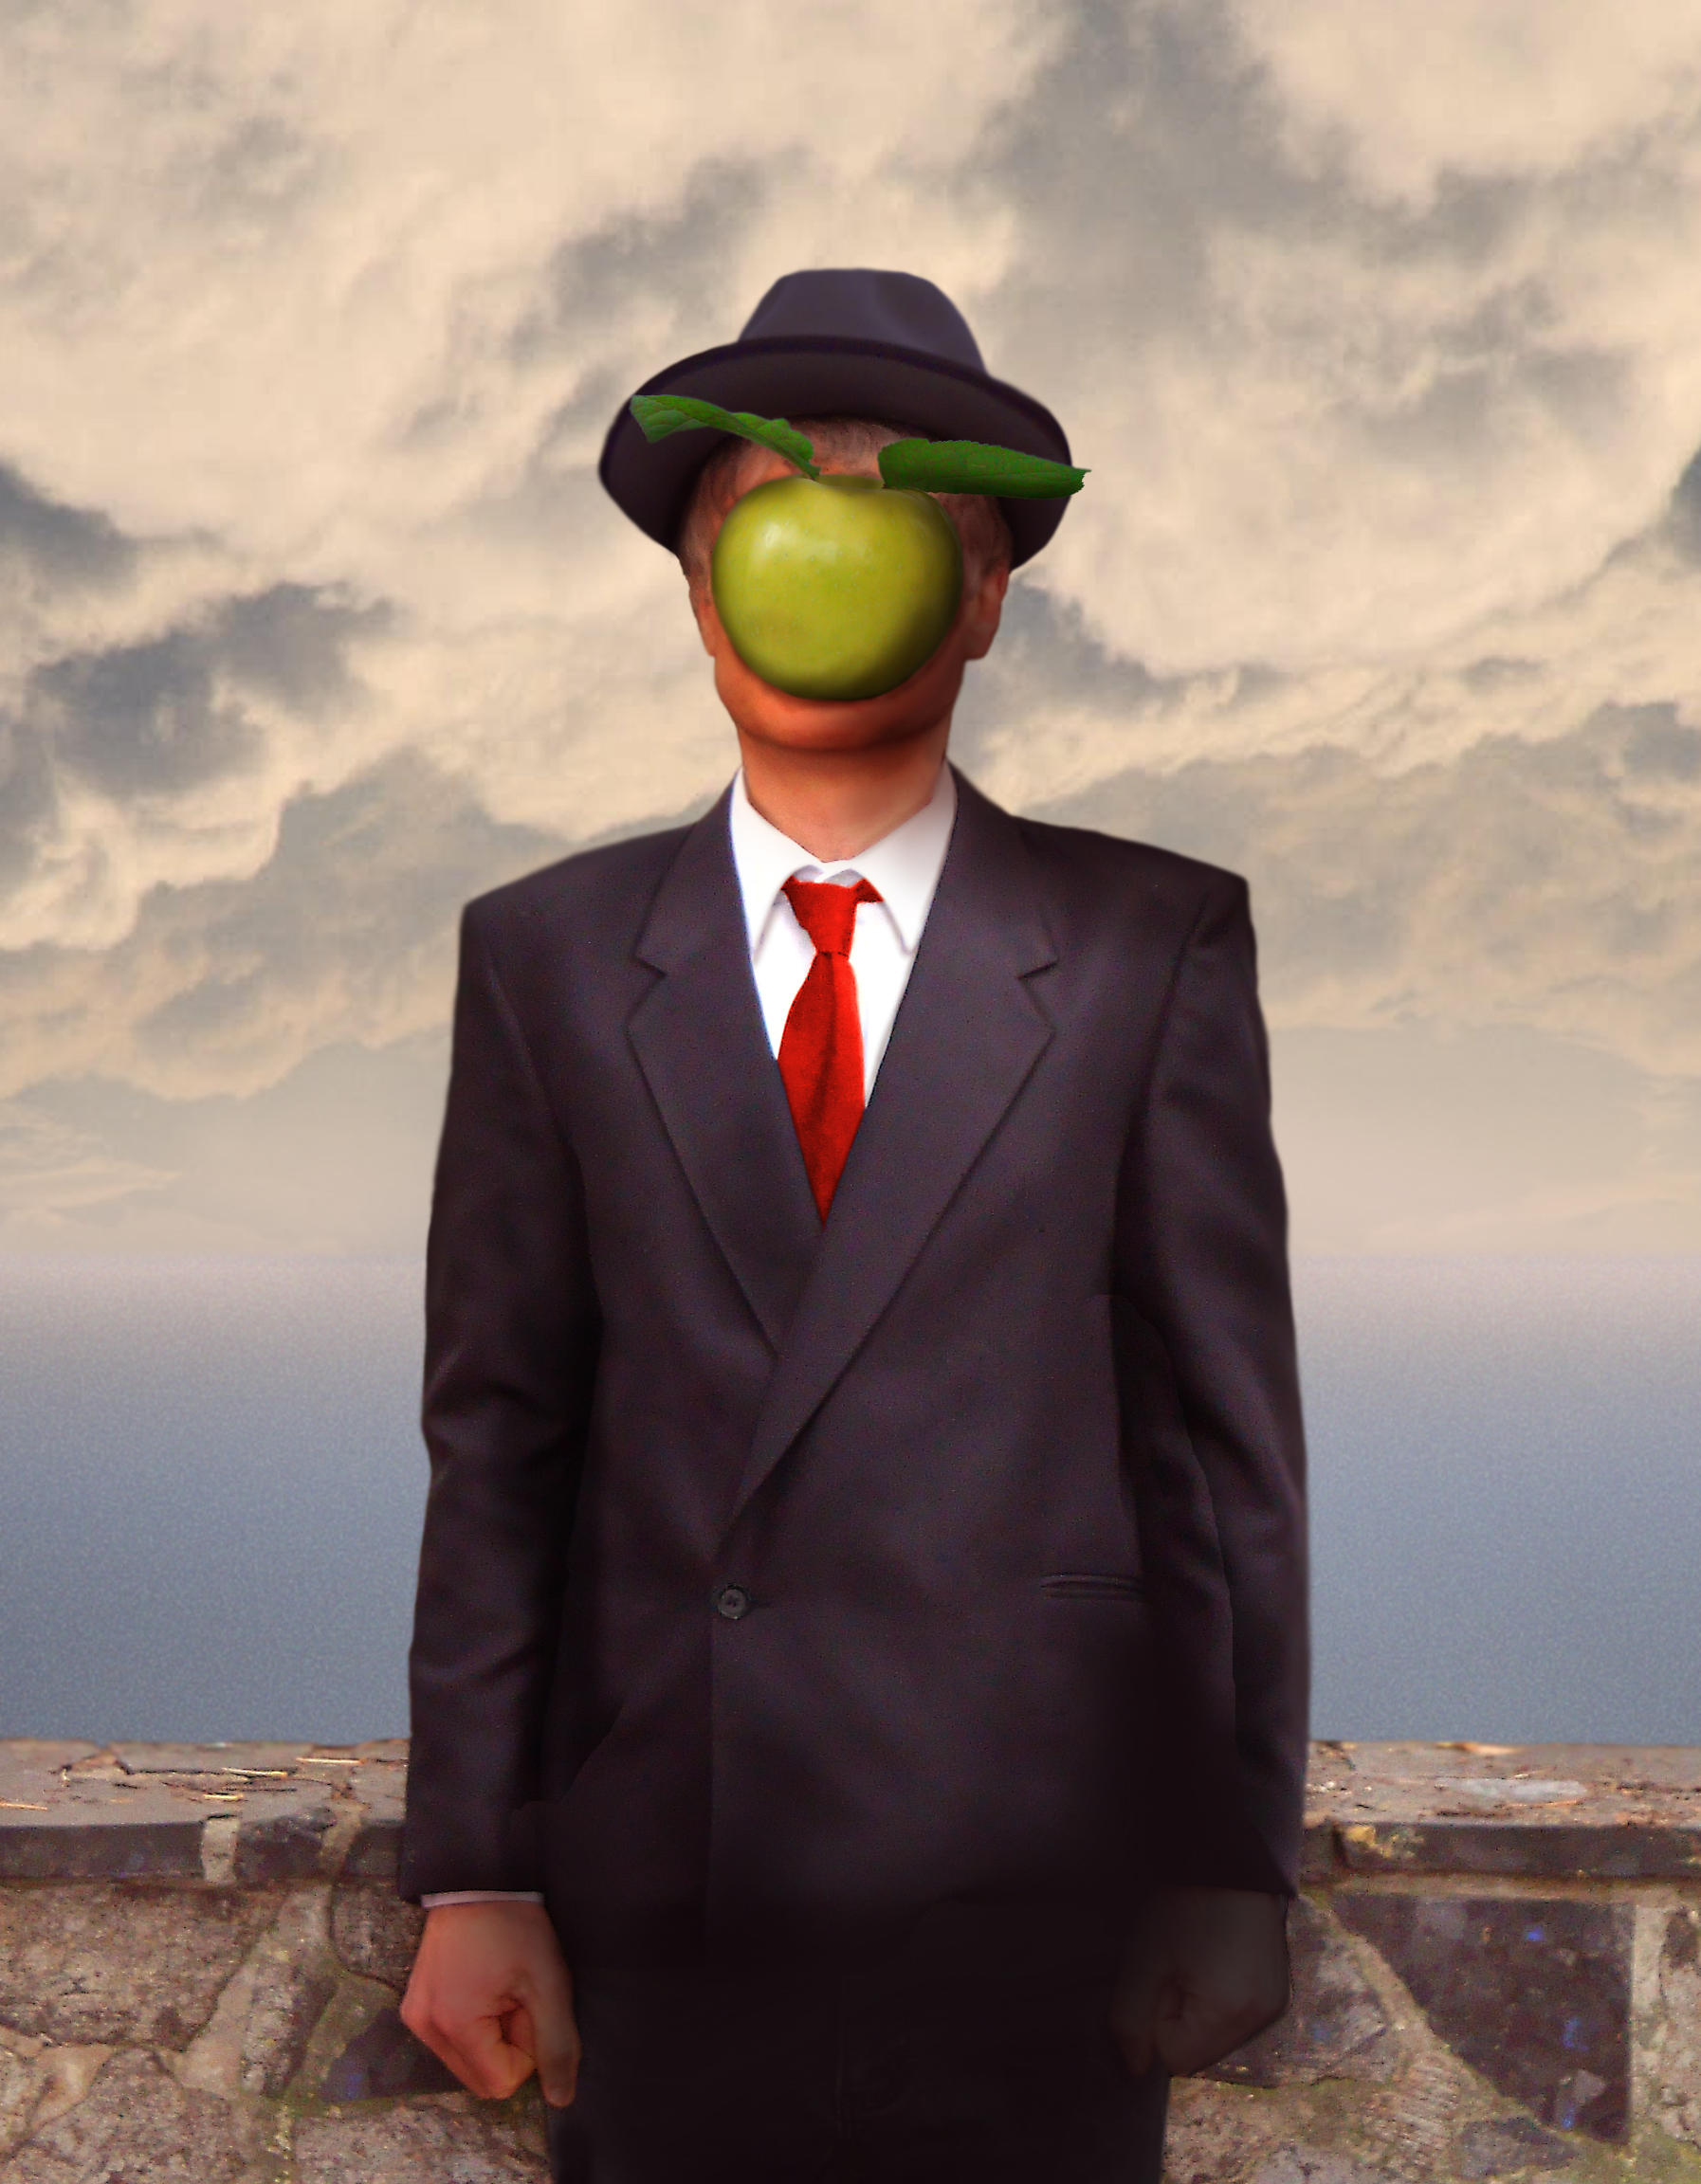 Rene Magritte The Son Of Man Vetting | The Last Bas...